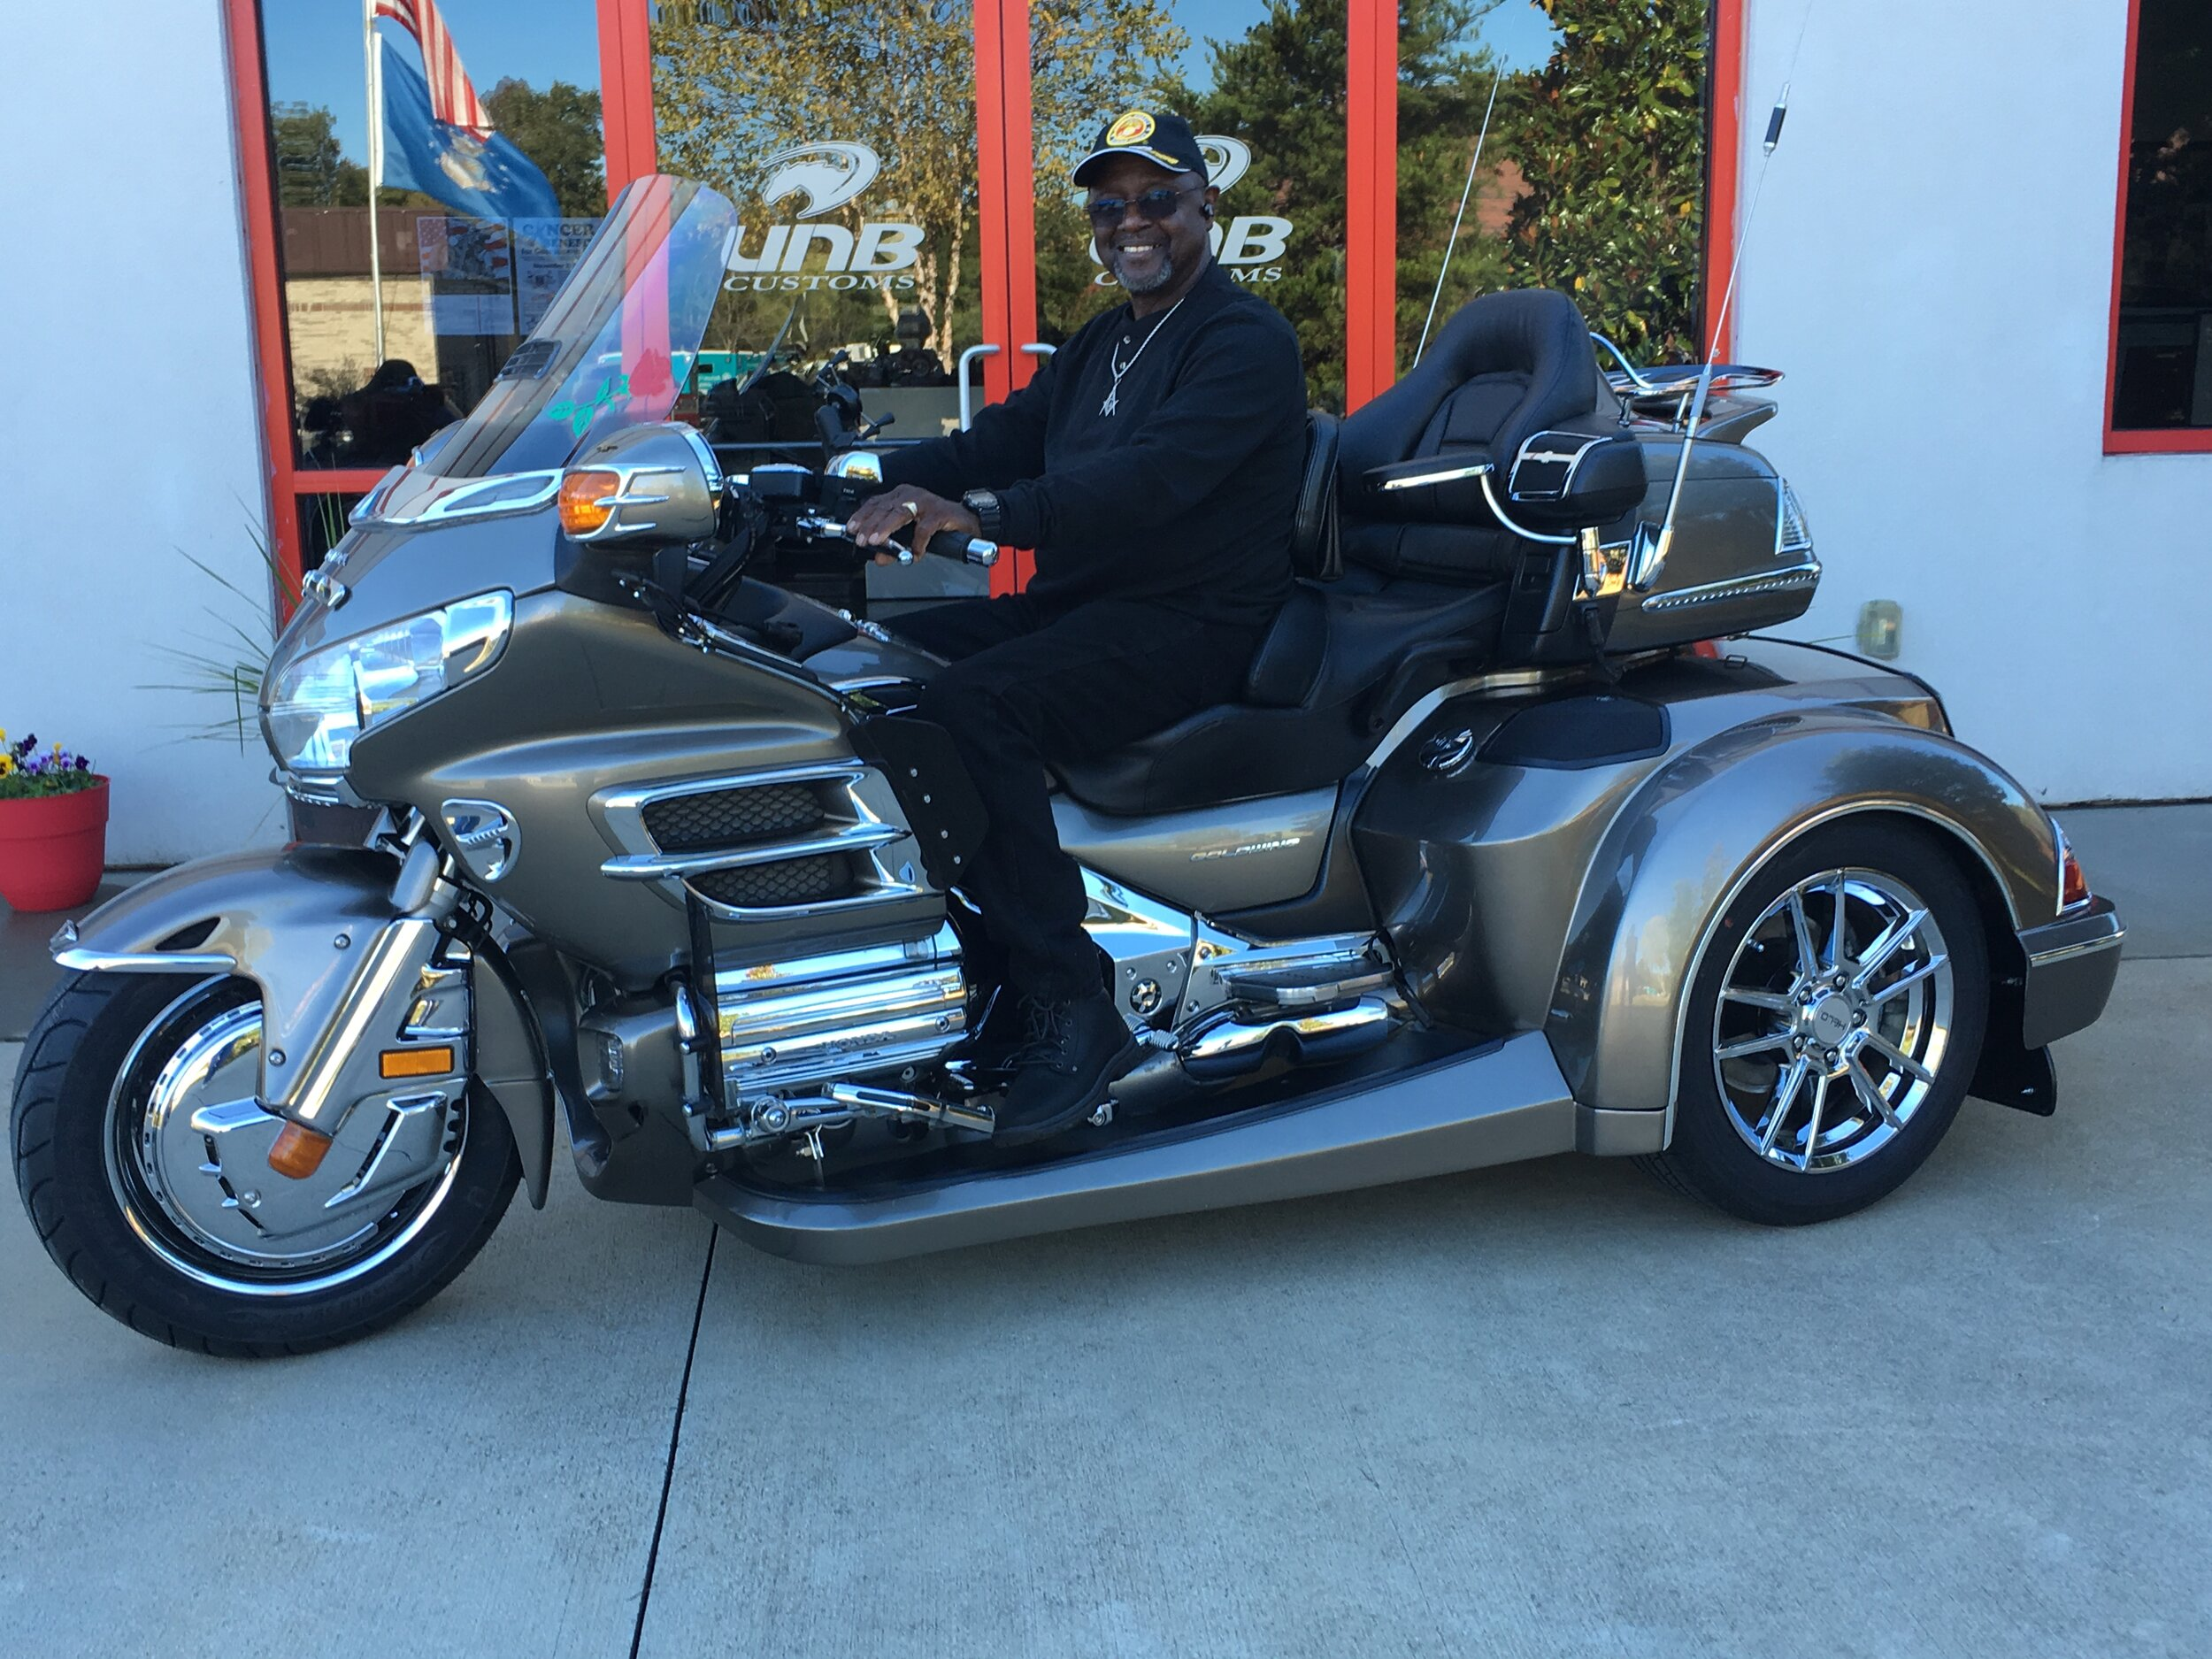 Moses with custom goldwing trike